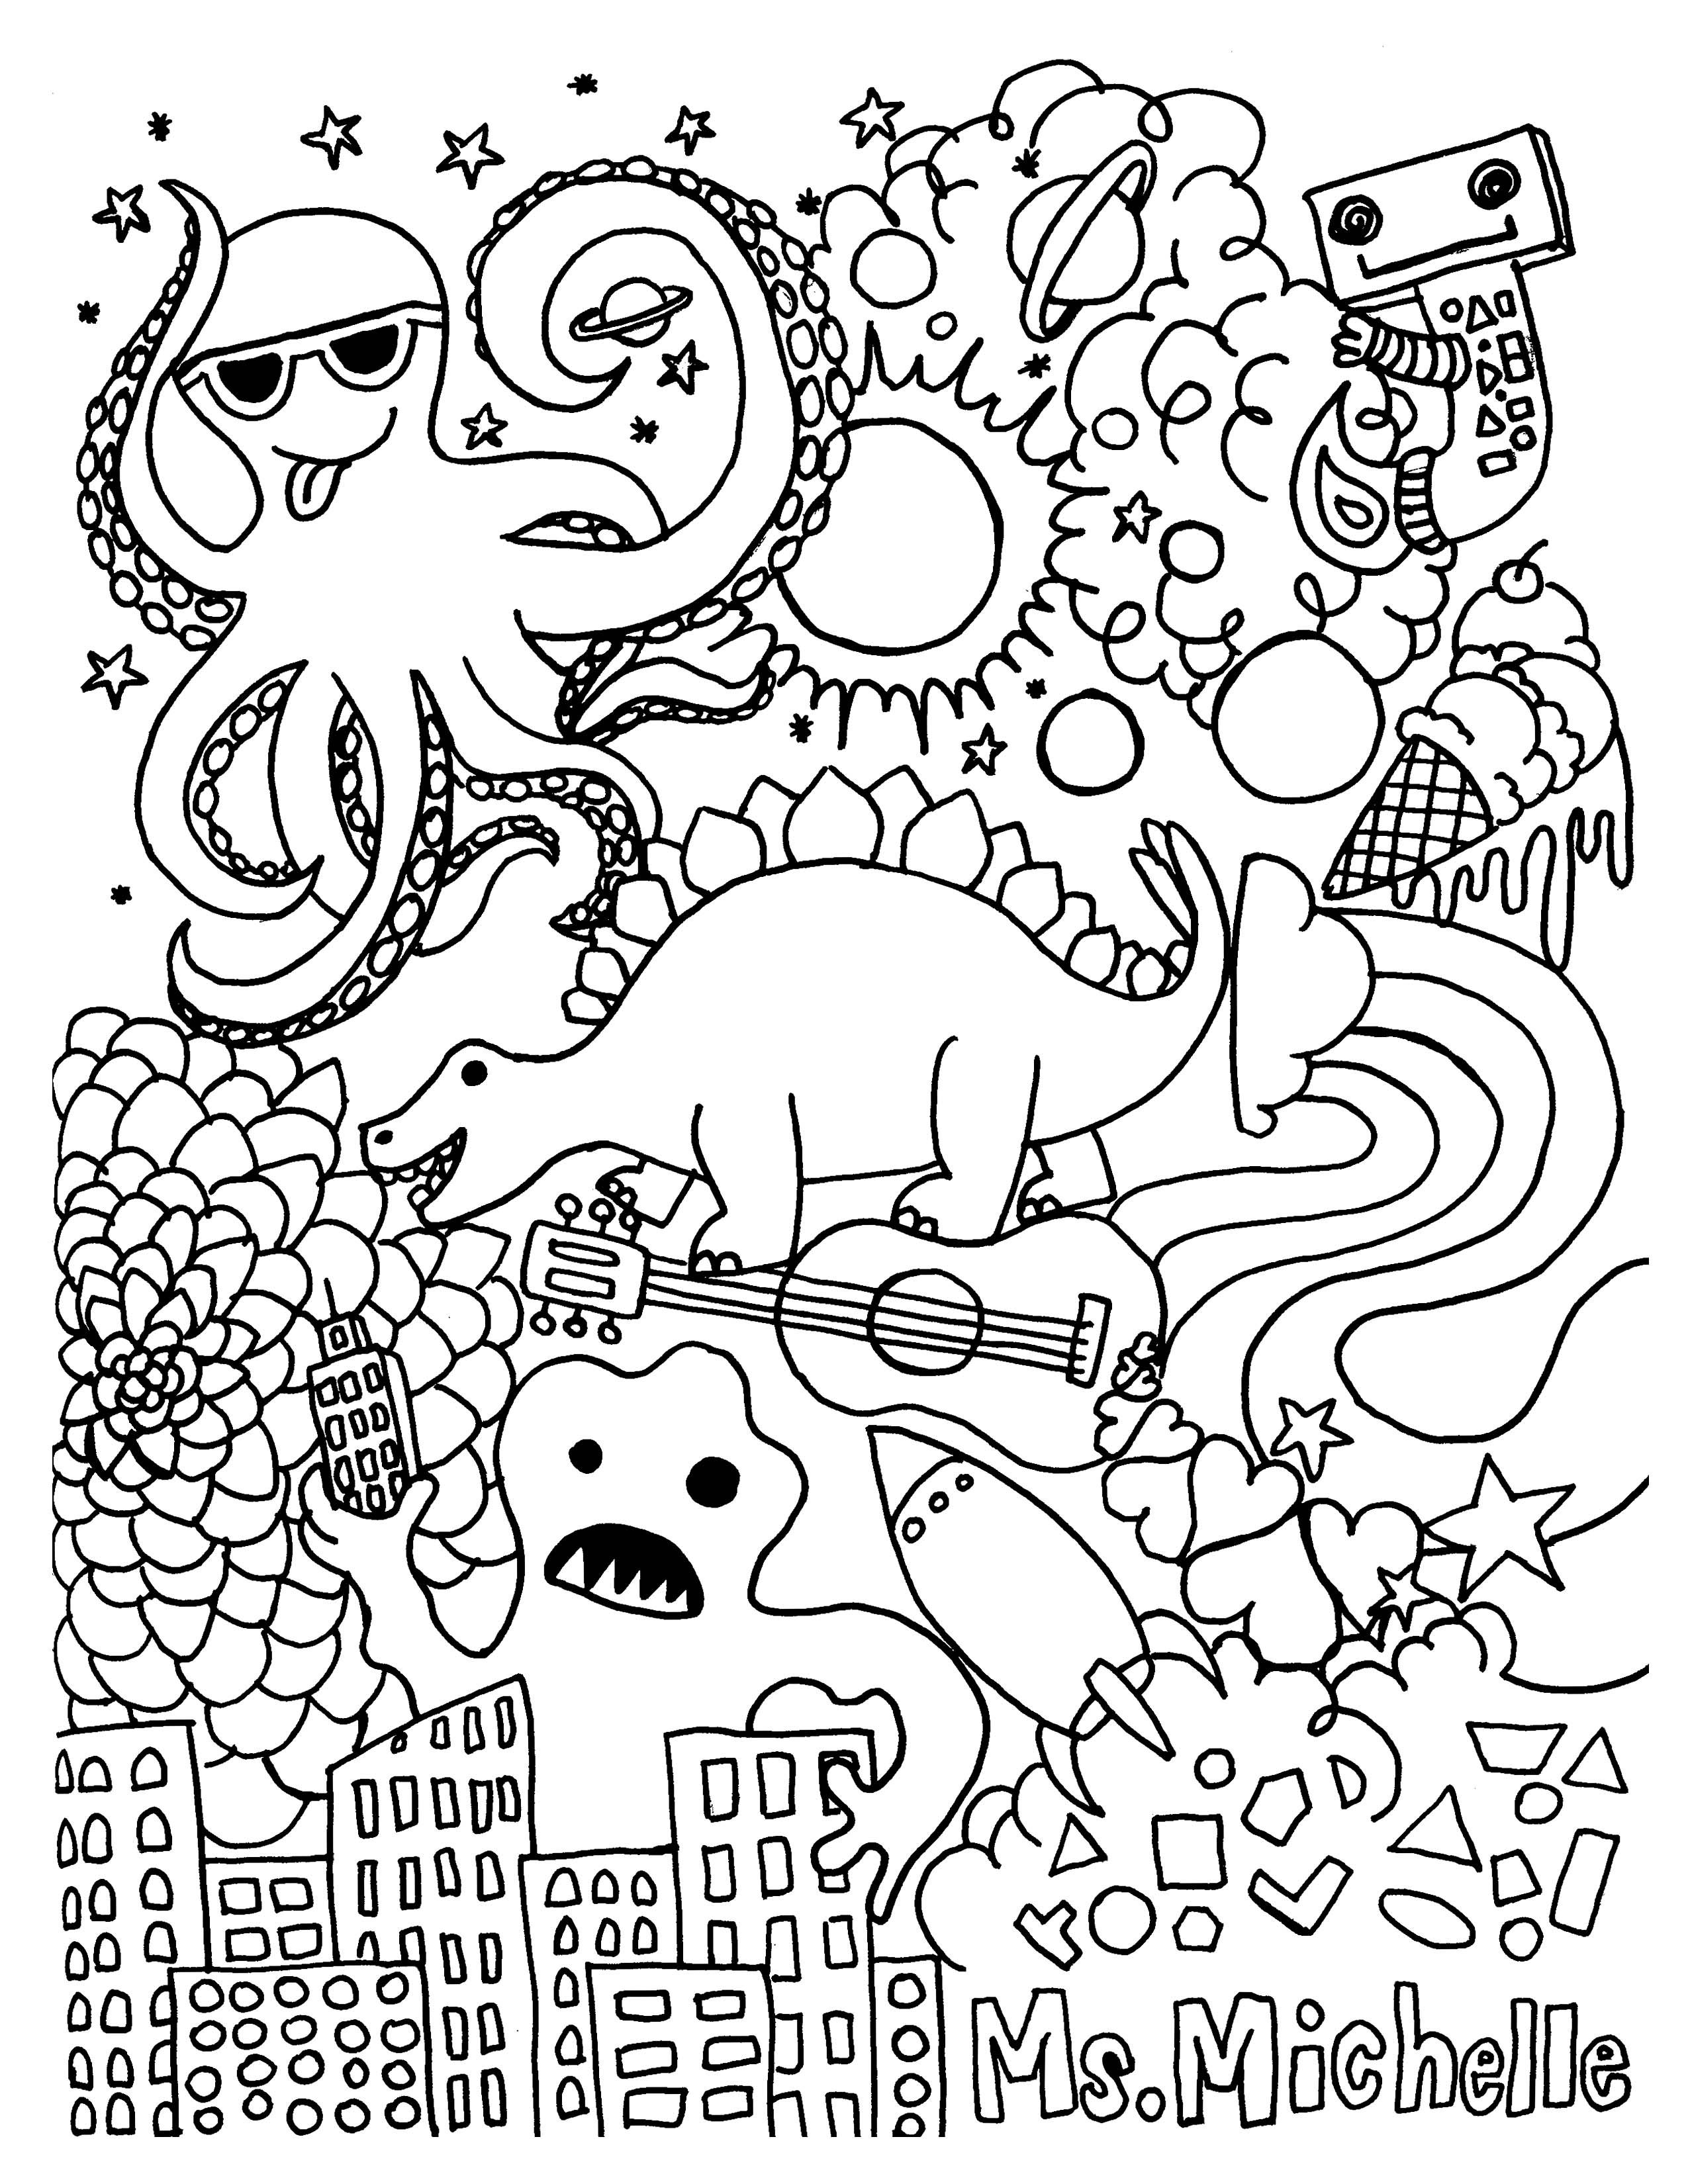 easy halloween coloring pages Download-Third Grade Coloring Pages 2 Food Ideas 10-b